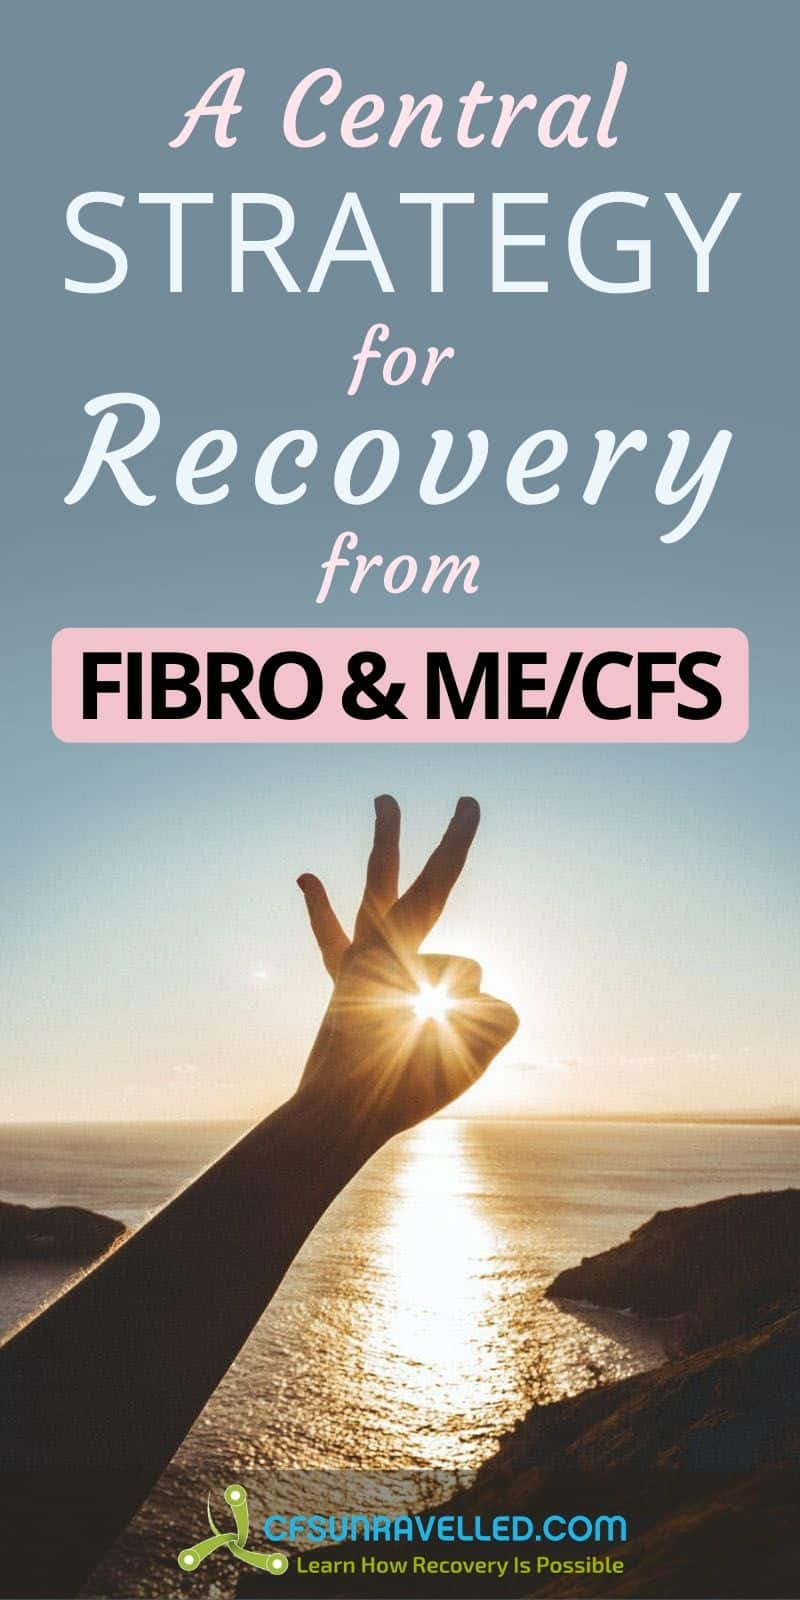 Hand with sunset effect at the center with a central strategy for recovery from FIBRO and MECFS